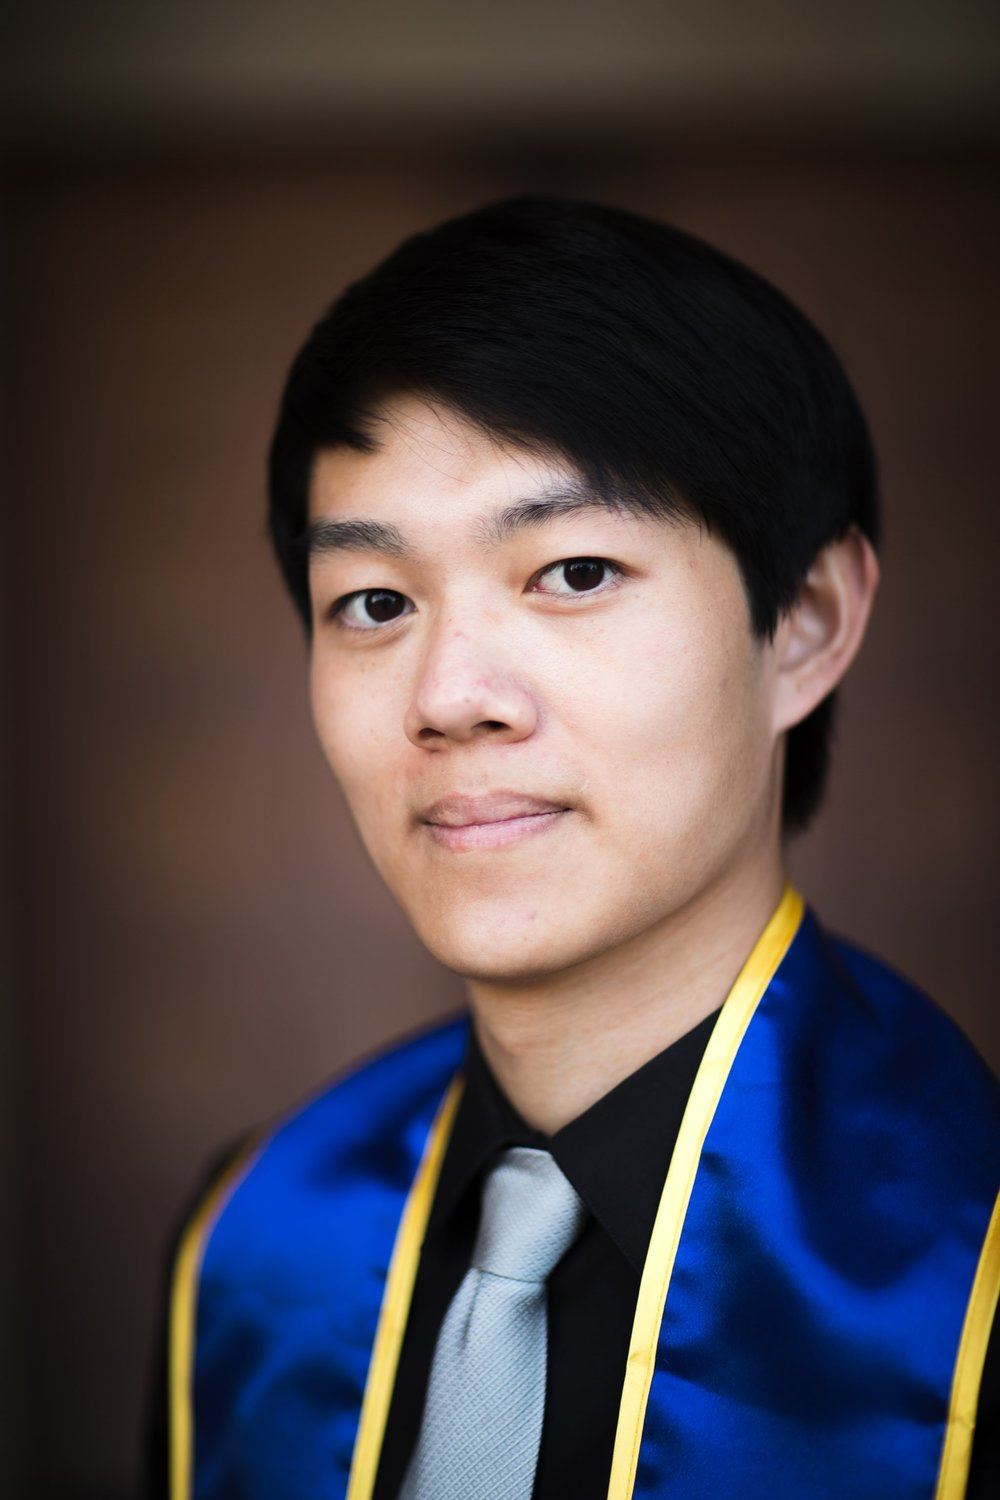 los-angeles-ucla-senior-graduation-portraits-royce-doors-  sc 1 st  Nick Lie Photography & Allen and Friends: UCLA Graduation Portraits u2014 Nick Lie Photography